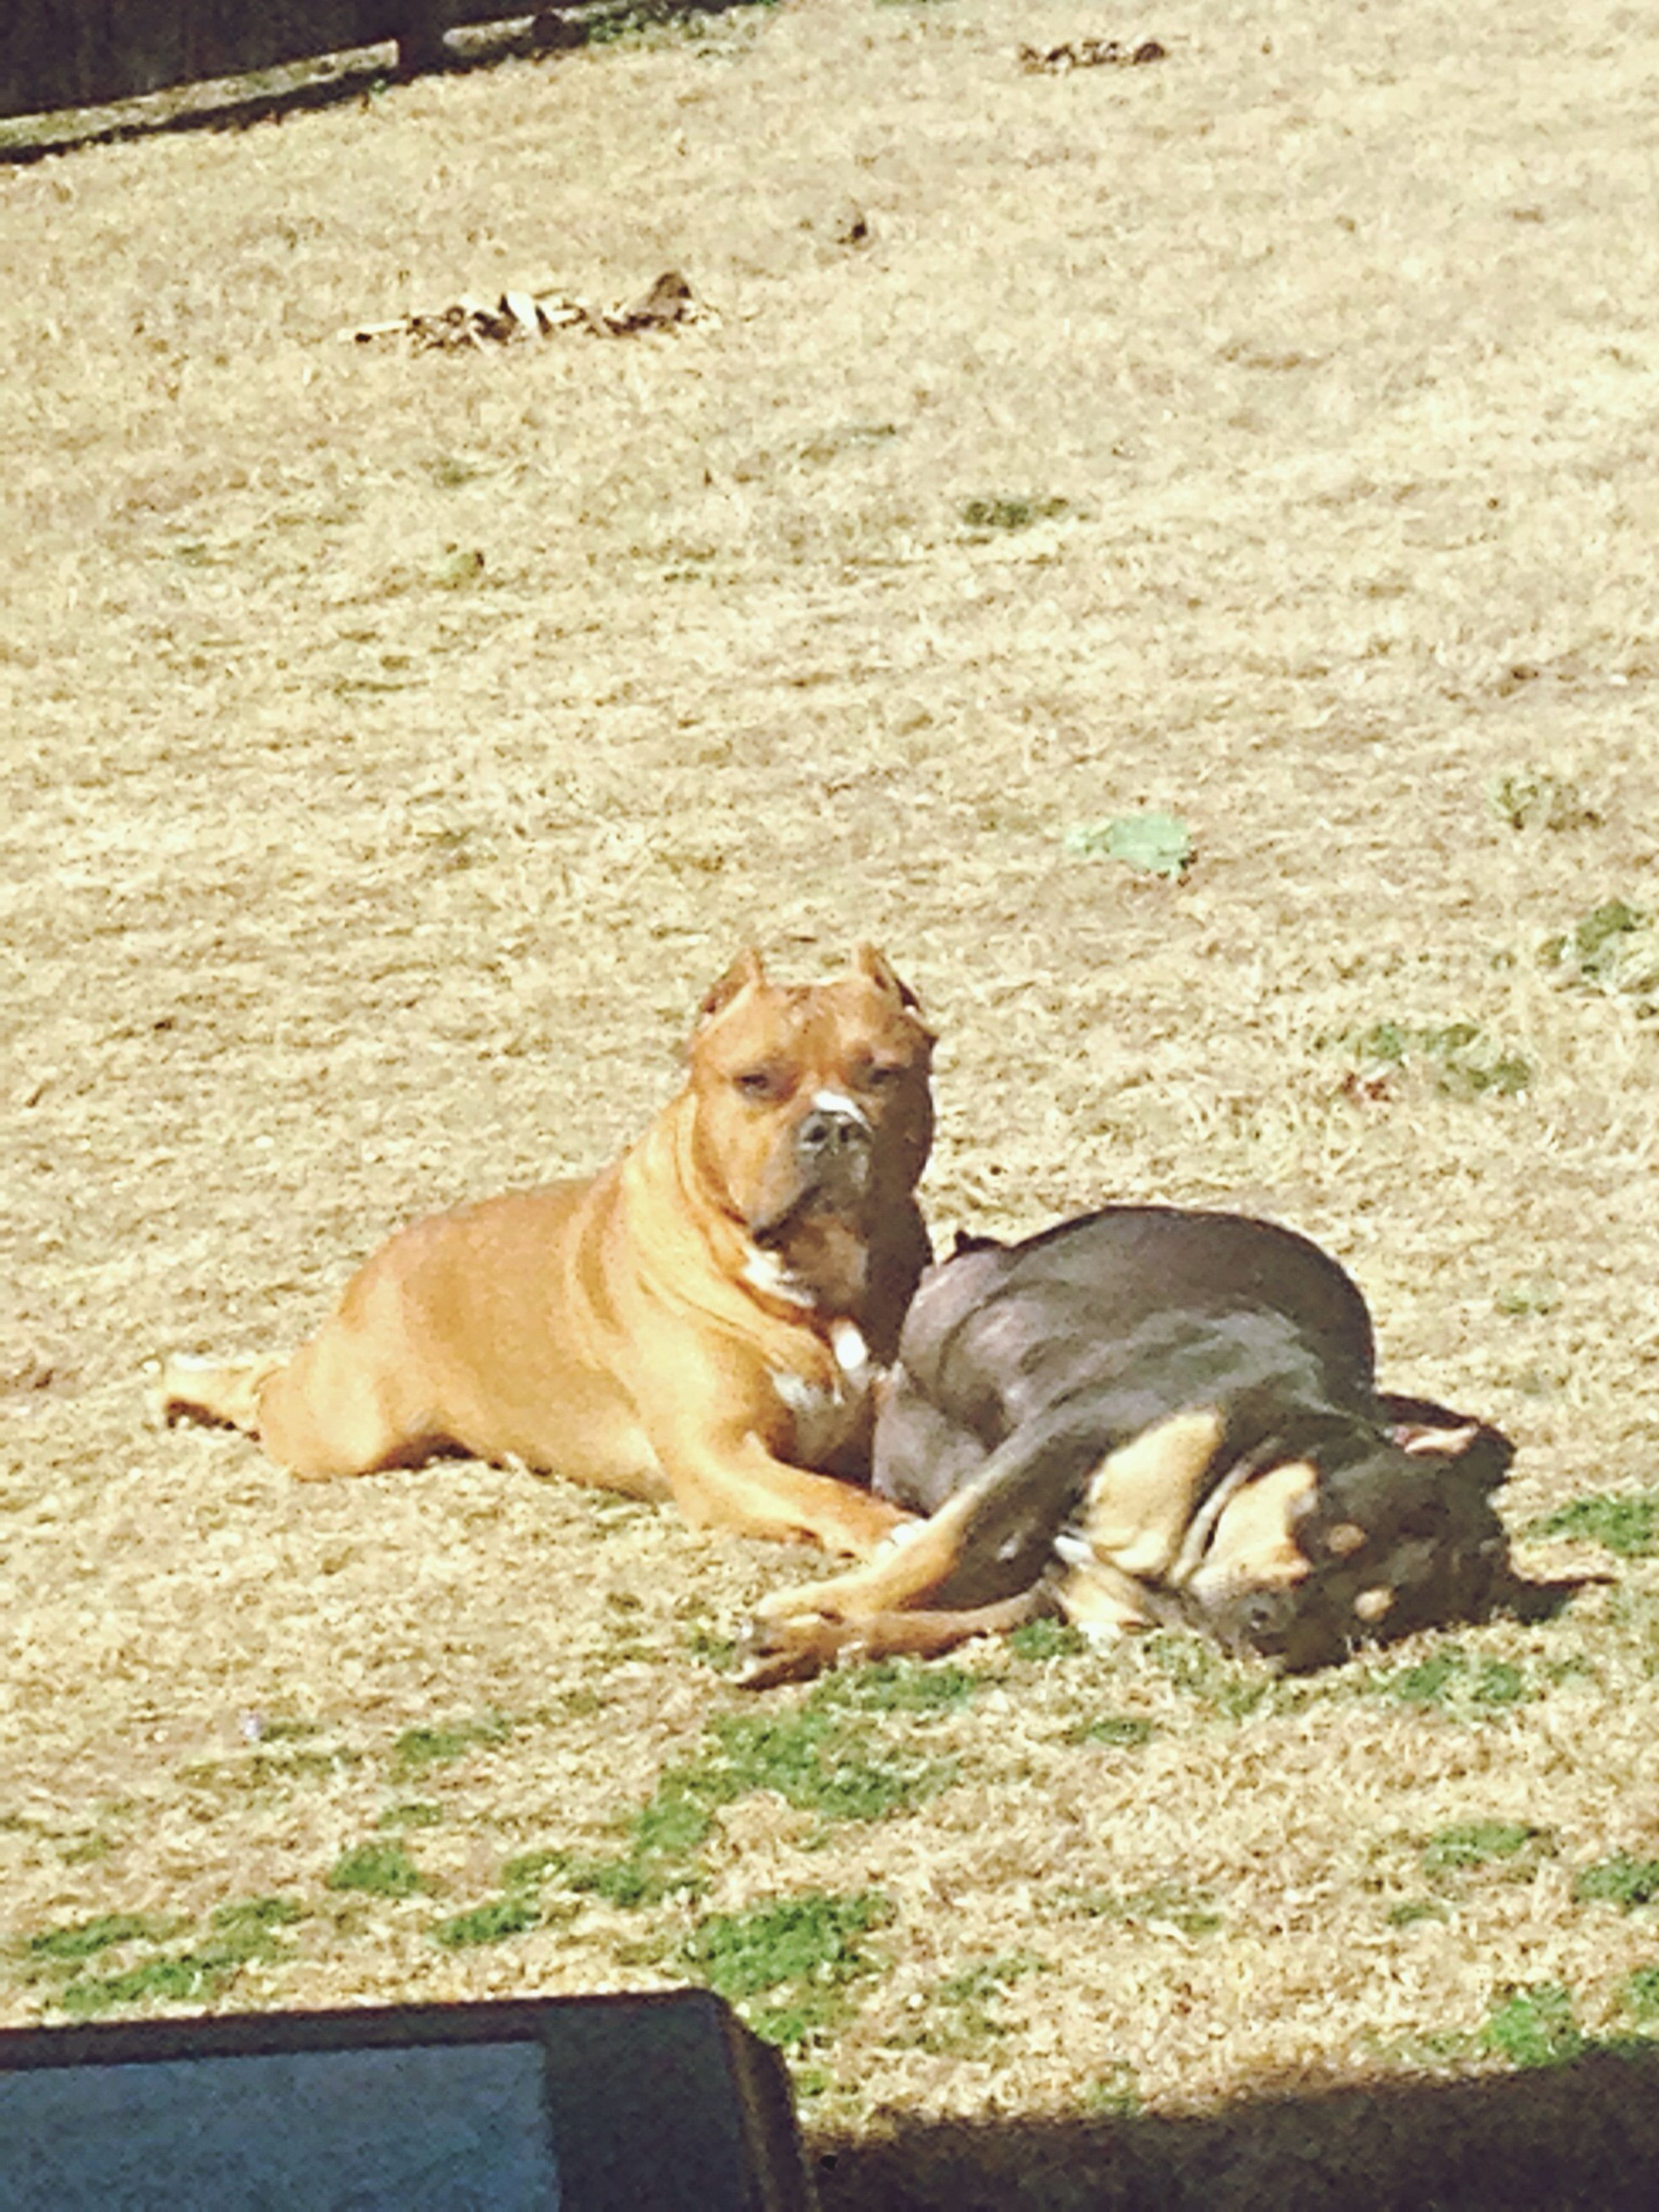 animal themes, mammal, domestic animals, pets, one animal, relaxation, grass, lying down, dog, two animals, resting, field, sitting, full length, day, outdoors, relaxing, side view, no people, nature